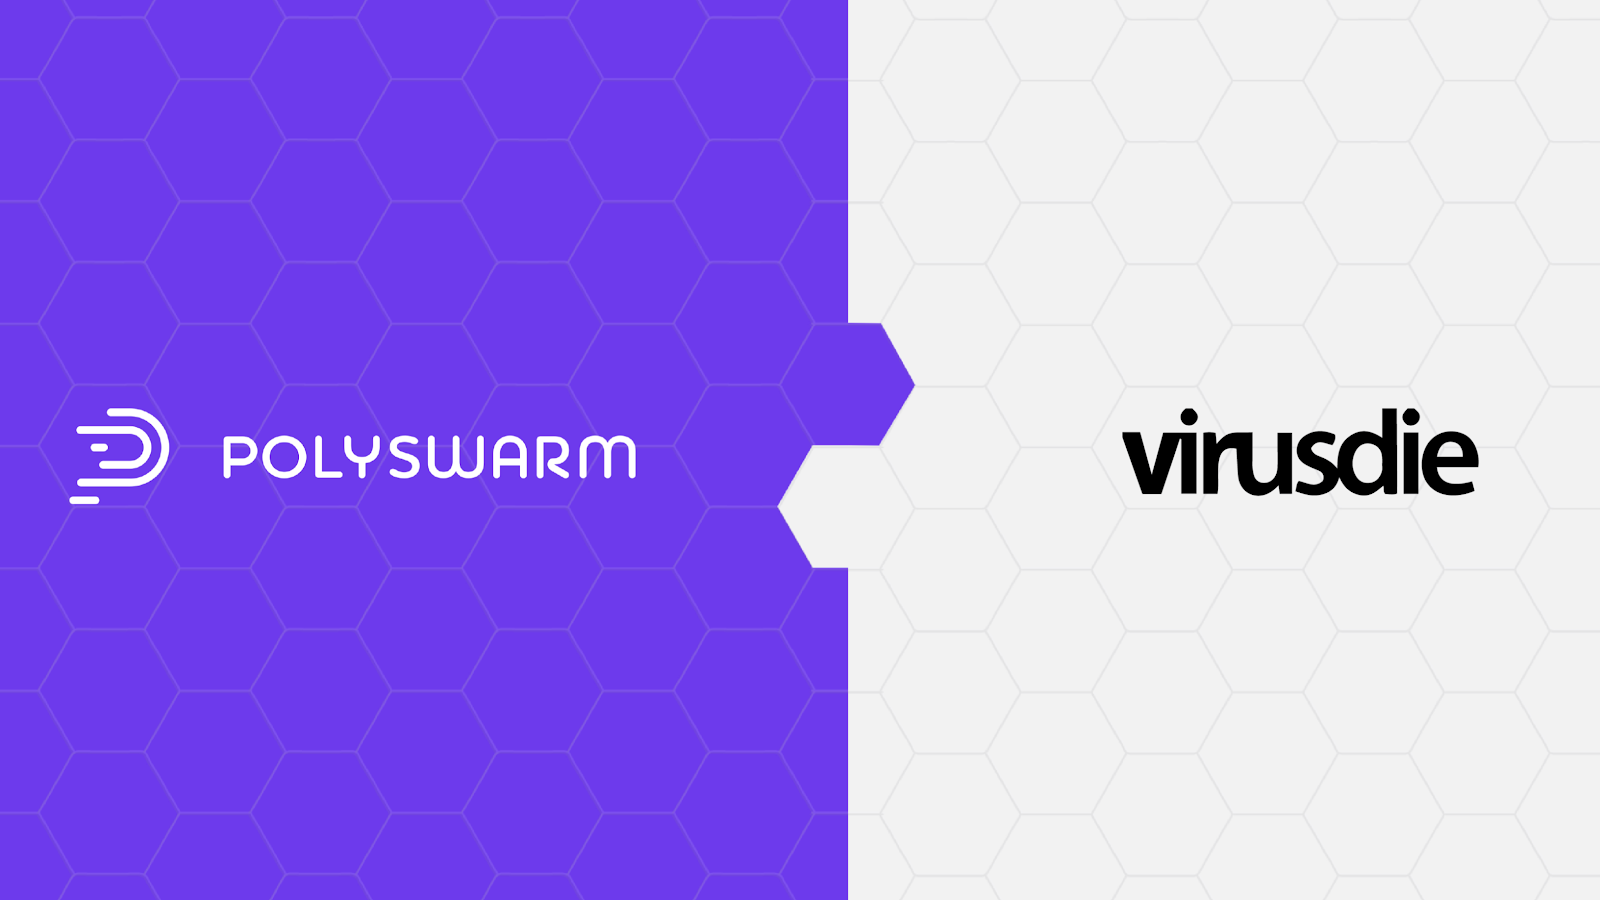 Virusdie on Polyswarm Marketplace